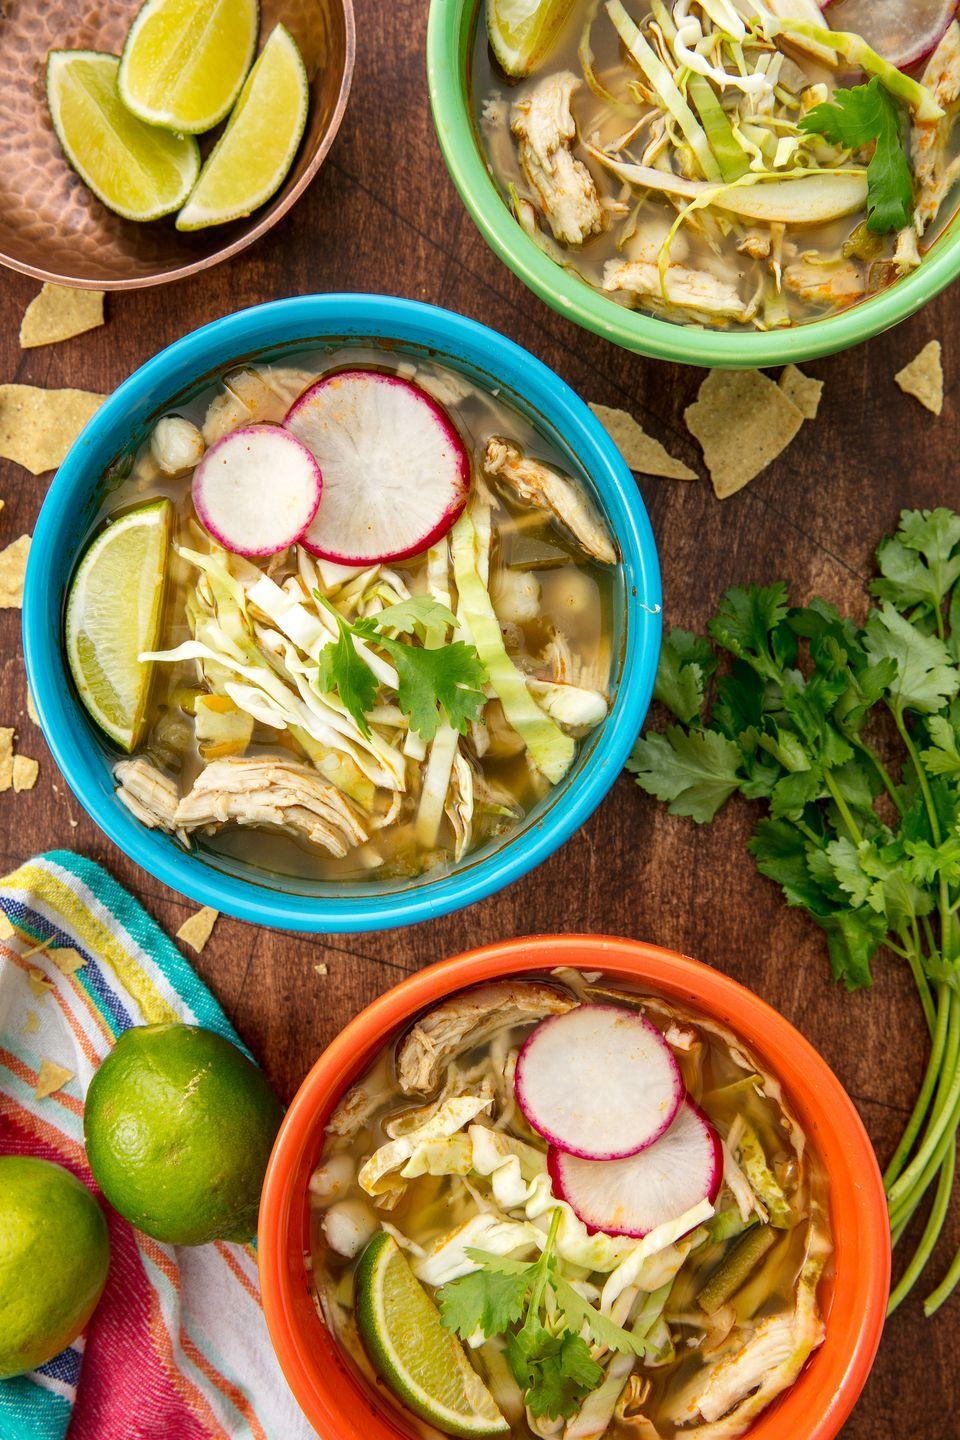 """<p>It doesn't get much better than this.</p><p>Get the recipe from <a href=""""https://www.delish.com/cooking/recipe-ideas/recipes/a55758/crock-pot-mexican-posole-recipe/"""" rel=""""nofollow noopener"""" target=""""_blank"""" data-ylk=""""slk:Delish"""" class=""""link rapid-noclick-resp"""">Delish</a>.</p>"""